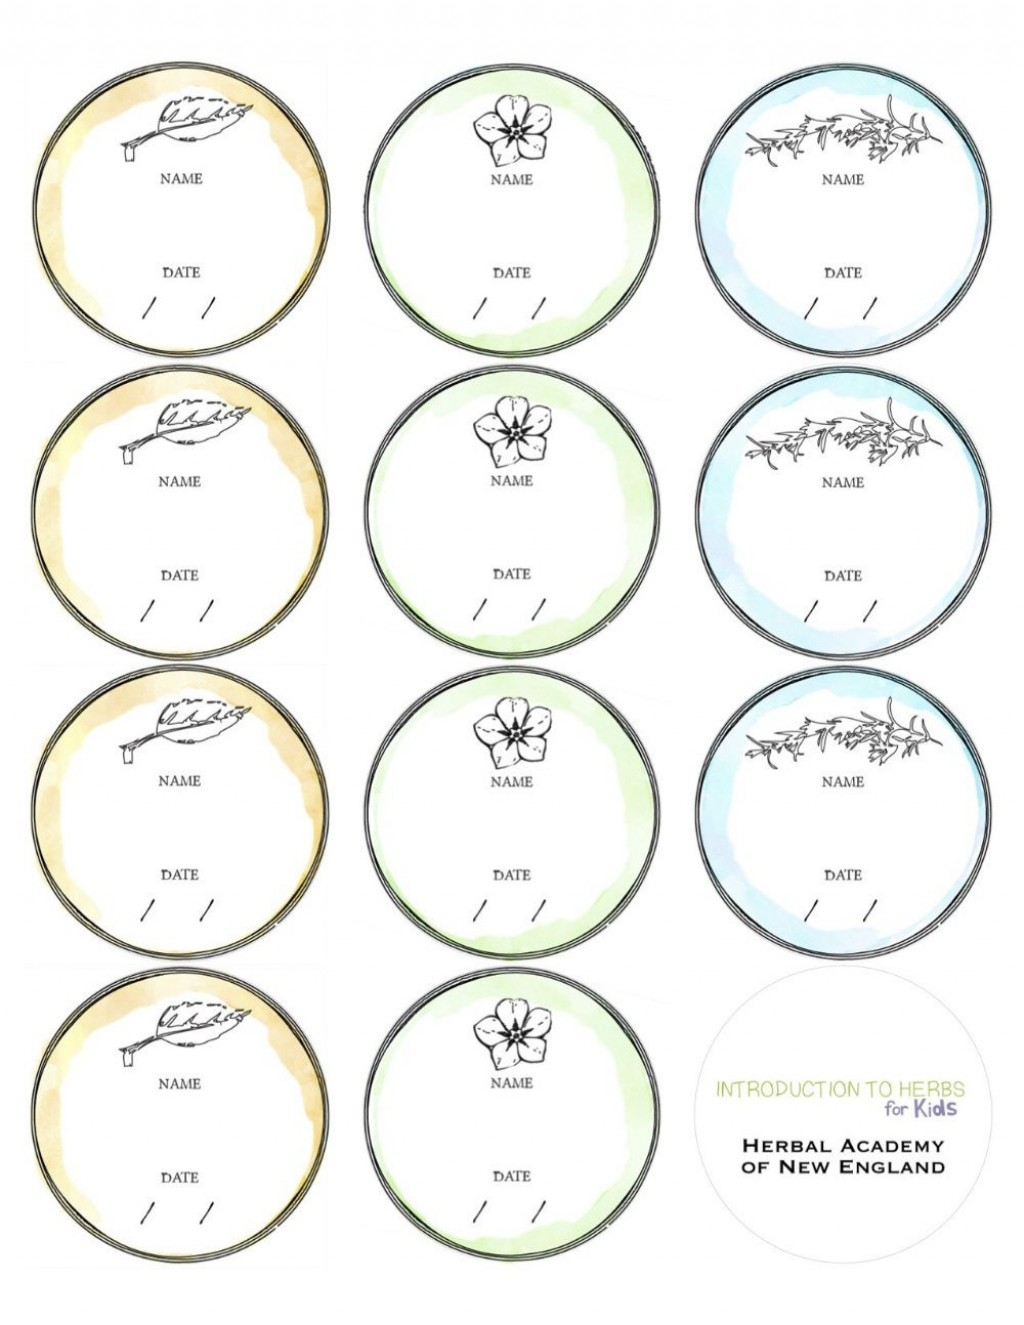 005 Exceptional Mason Jar Label Template Inspiration  Word AveryLarge